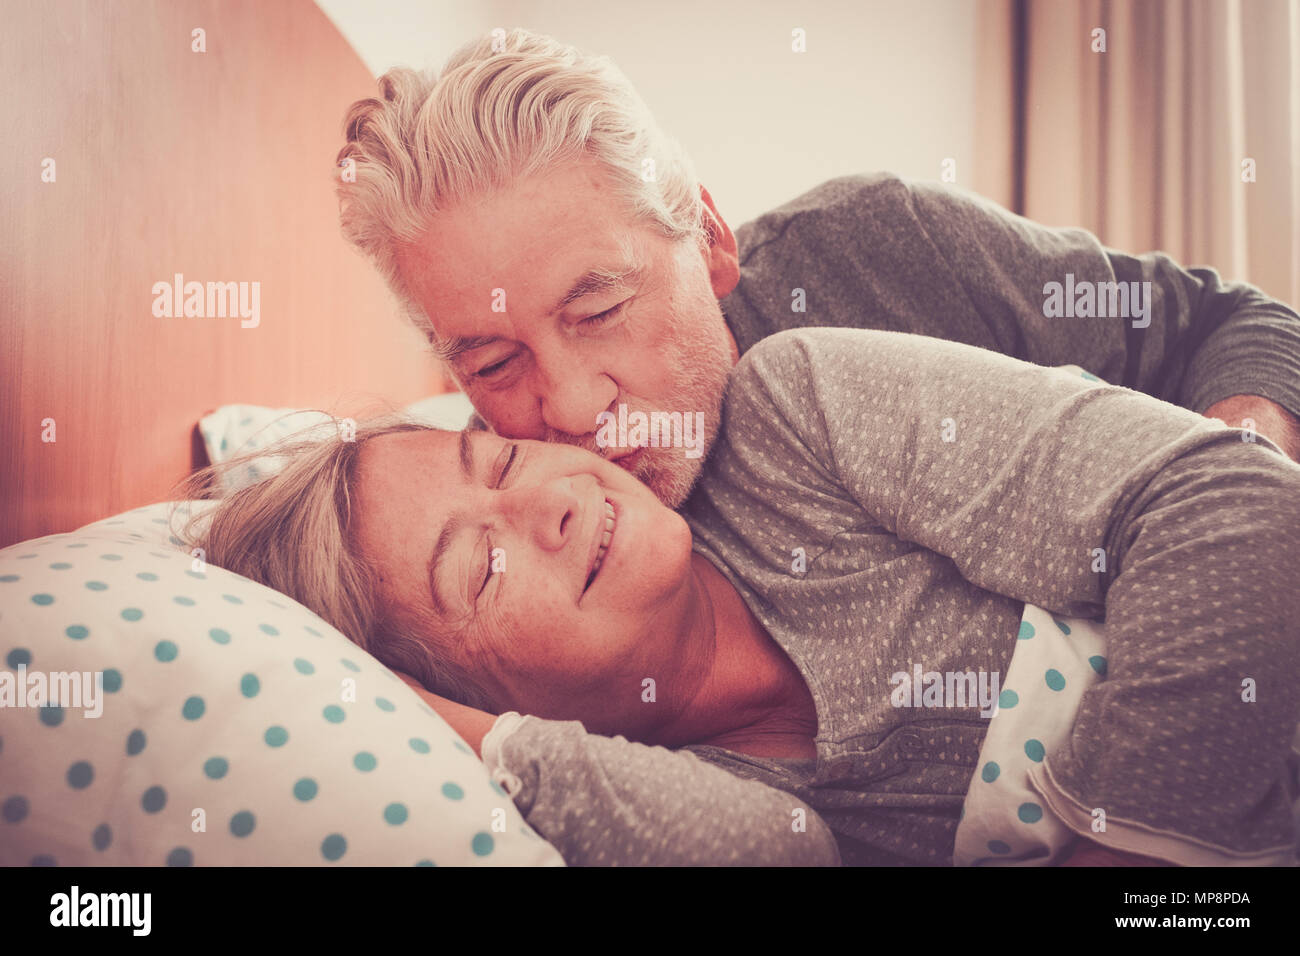 Couple of senior man and woman waking up and smiling with a hug while are in the bed at home. Vintage filter and light in the back. The man kiss the w - Stock Image